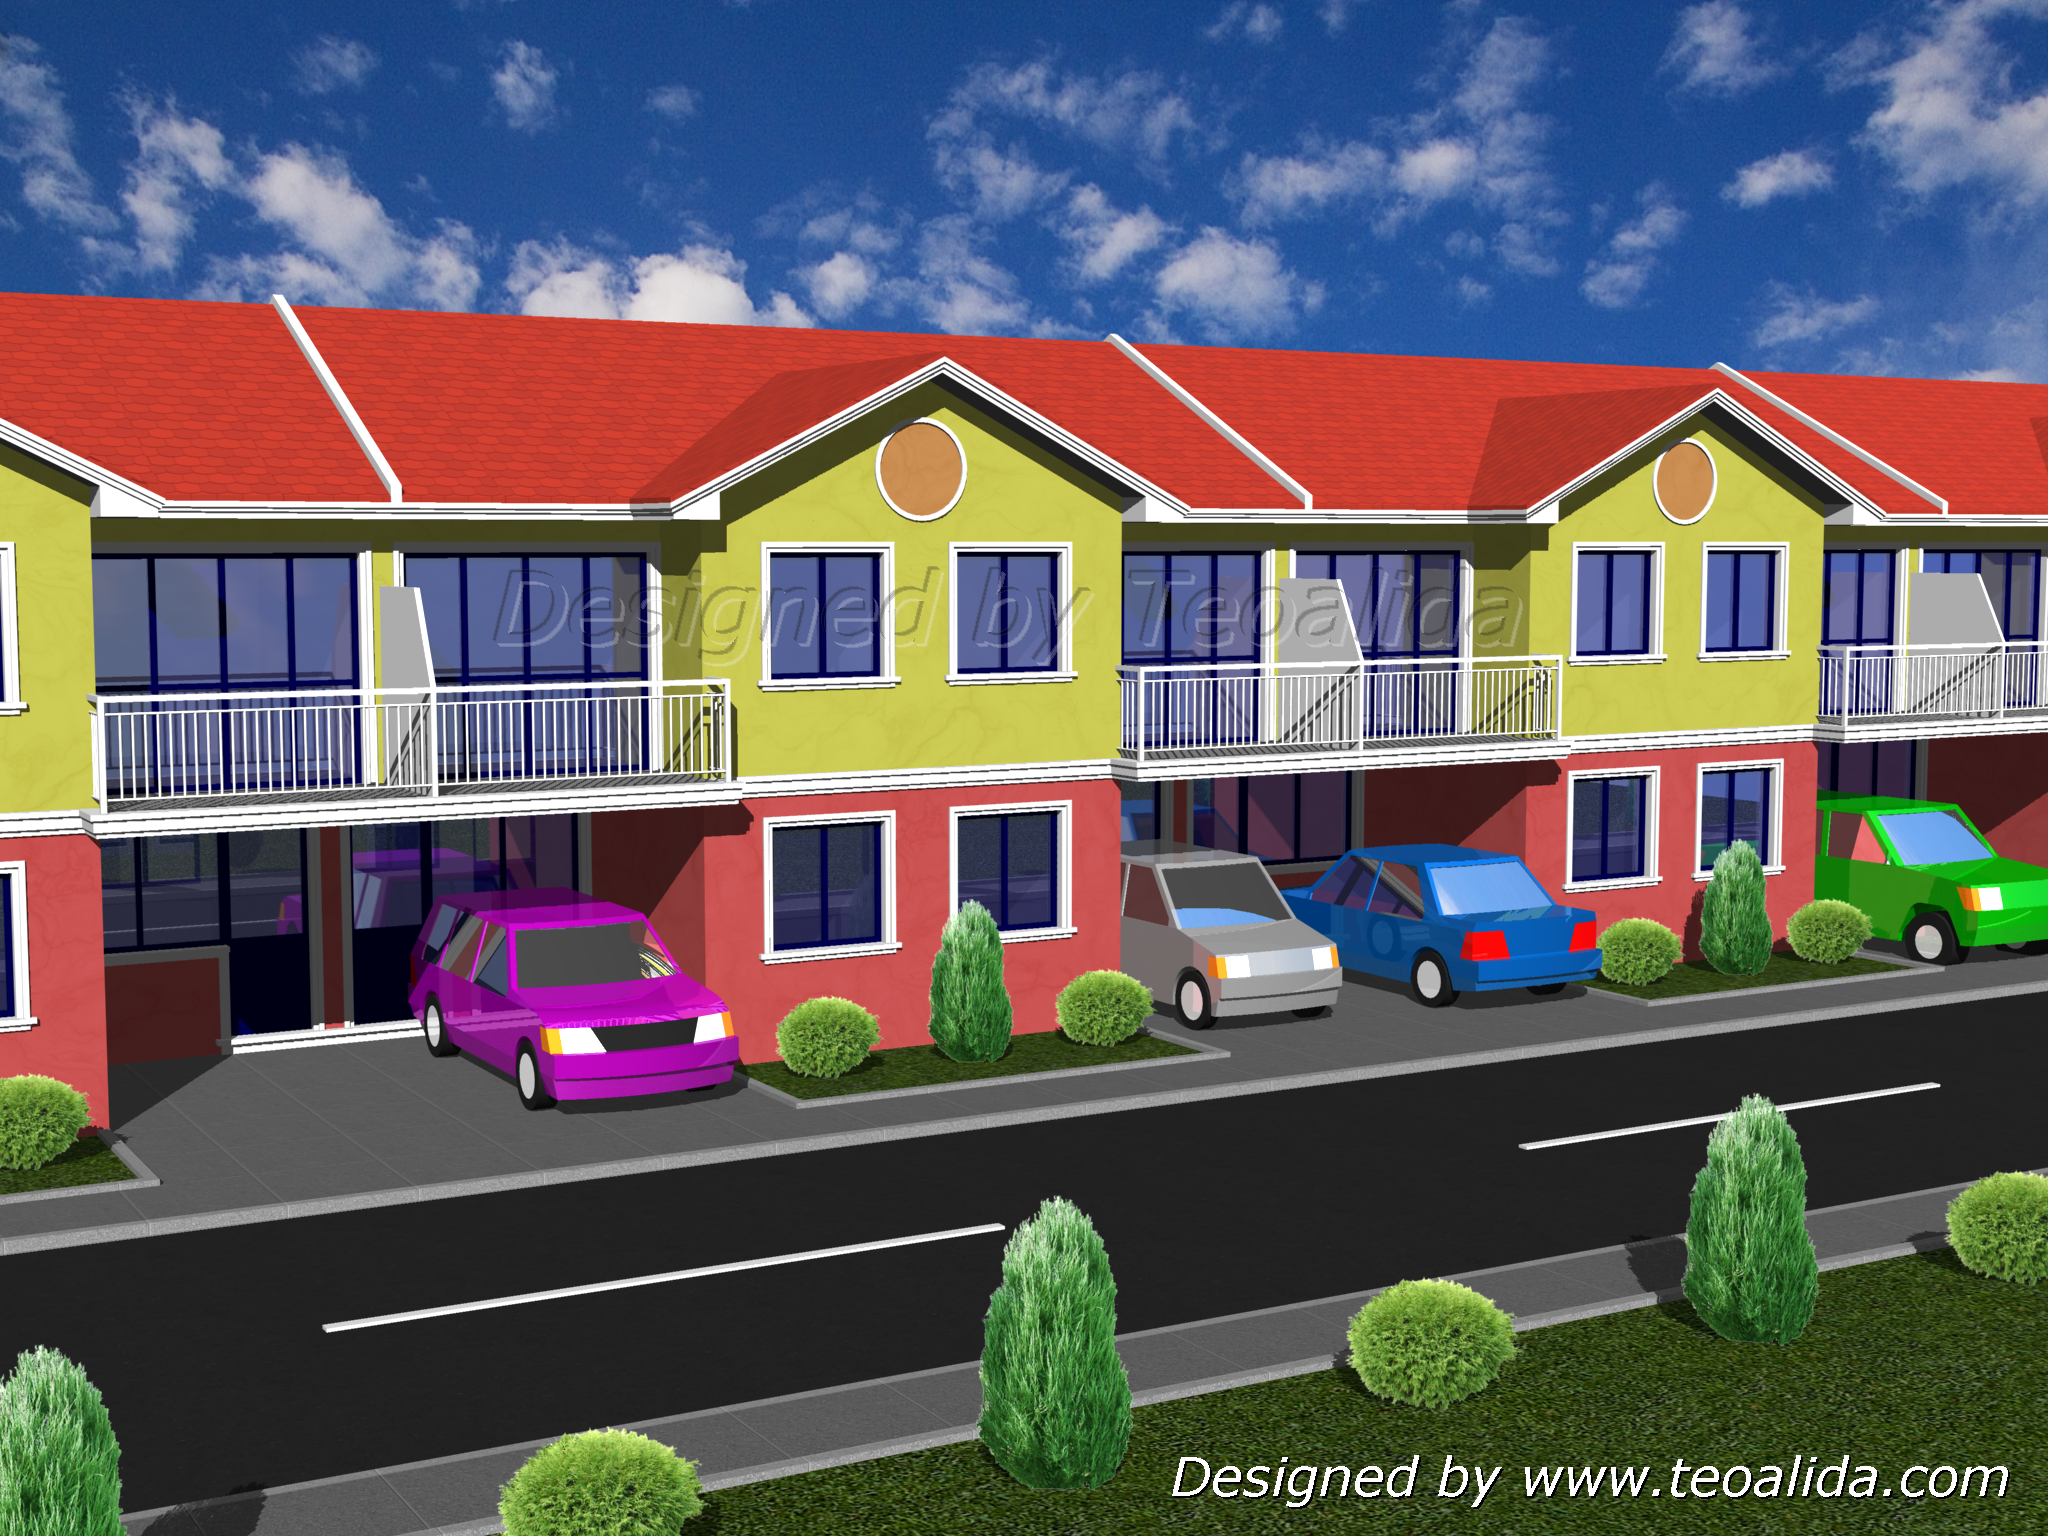 M j obl ben dom house design 60 sqm 120 for Townhouse design in the philippines